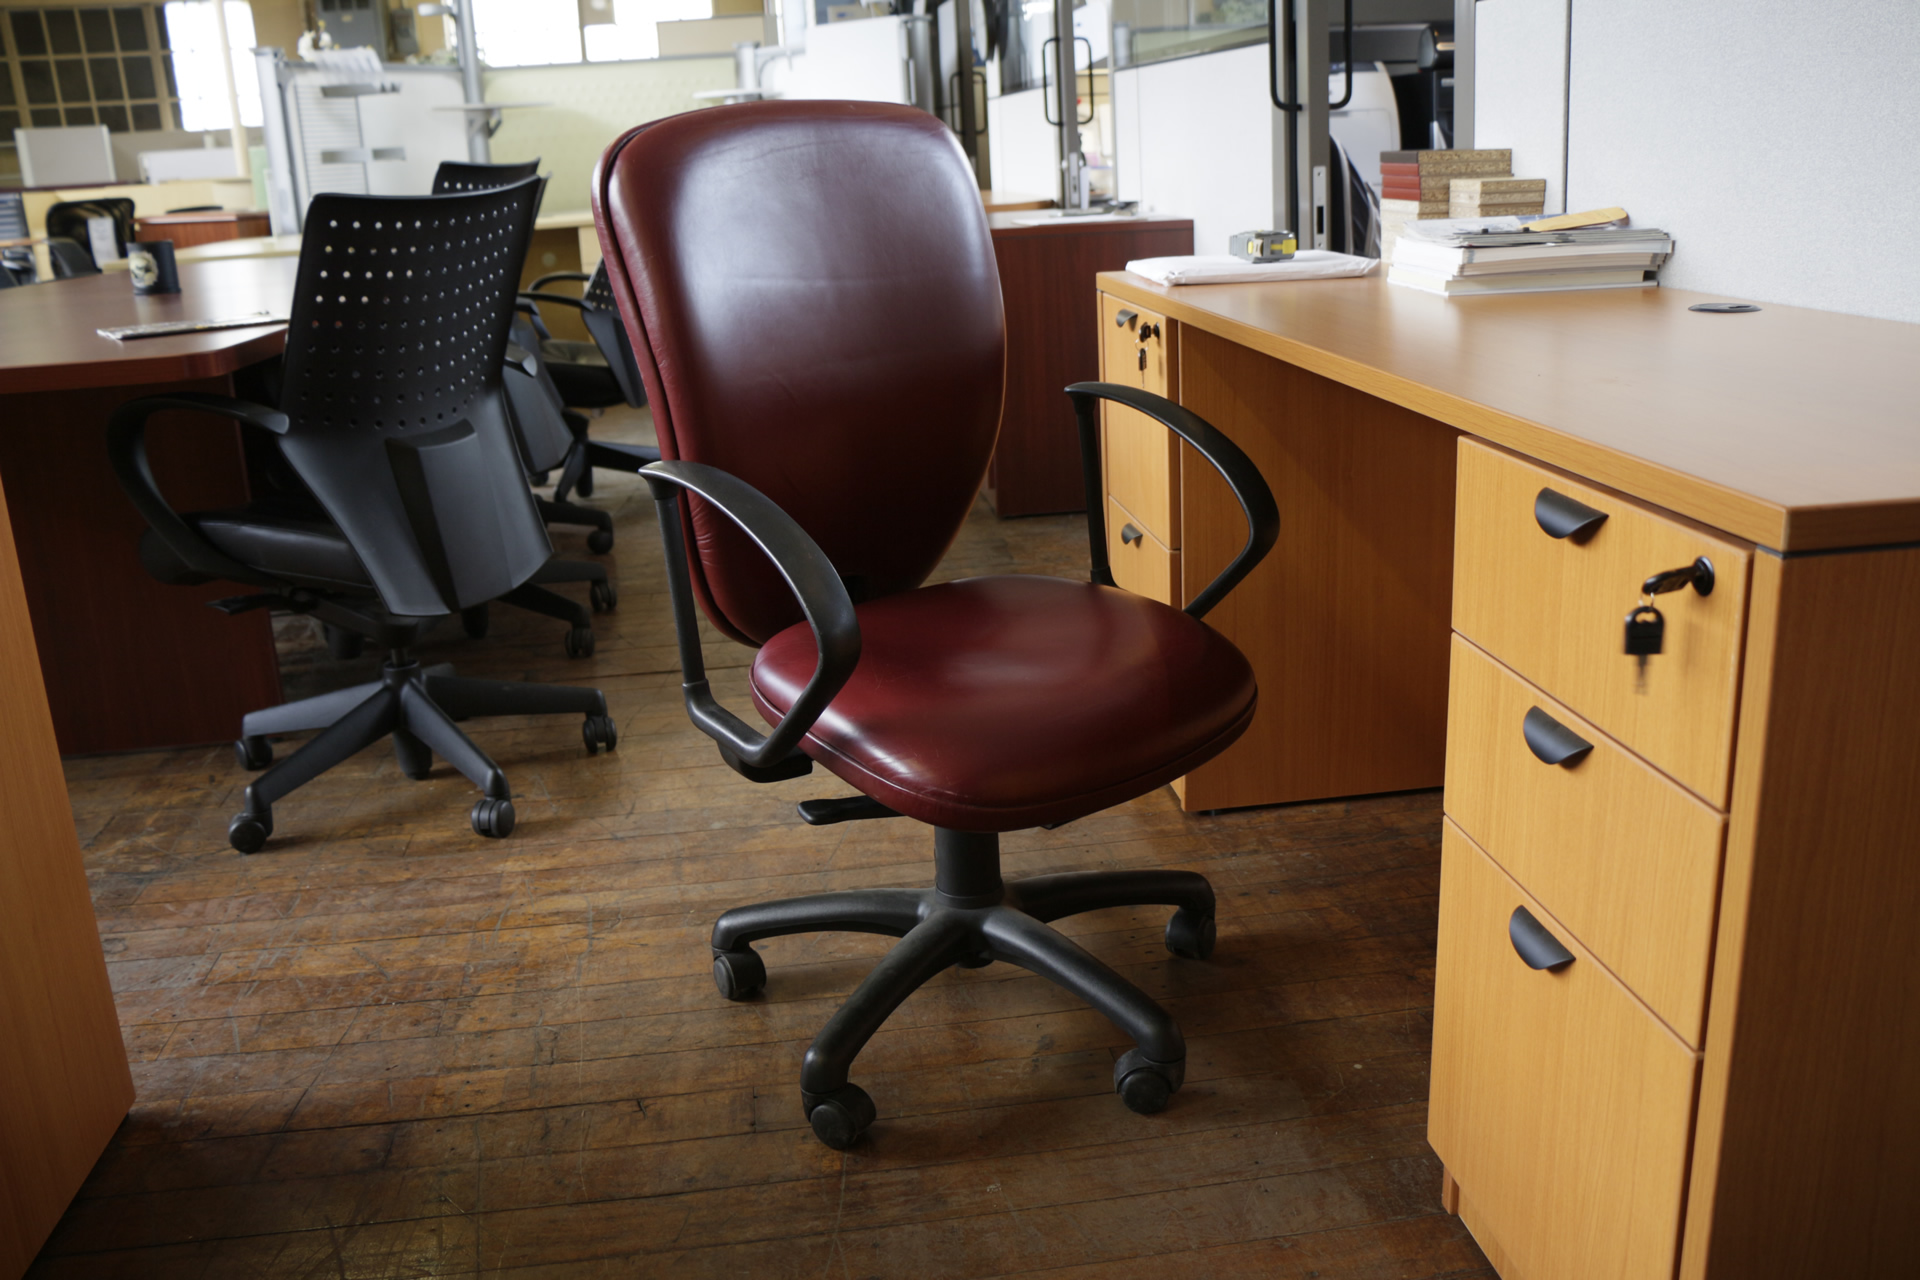 peartreeofficefurniture_peartreeofficefurniture_mg_32821.jpg